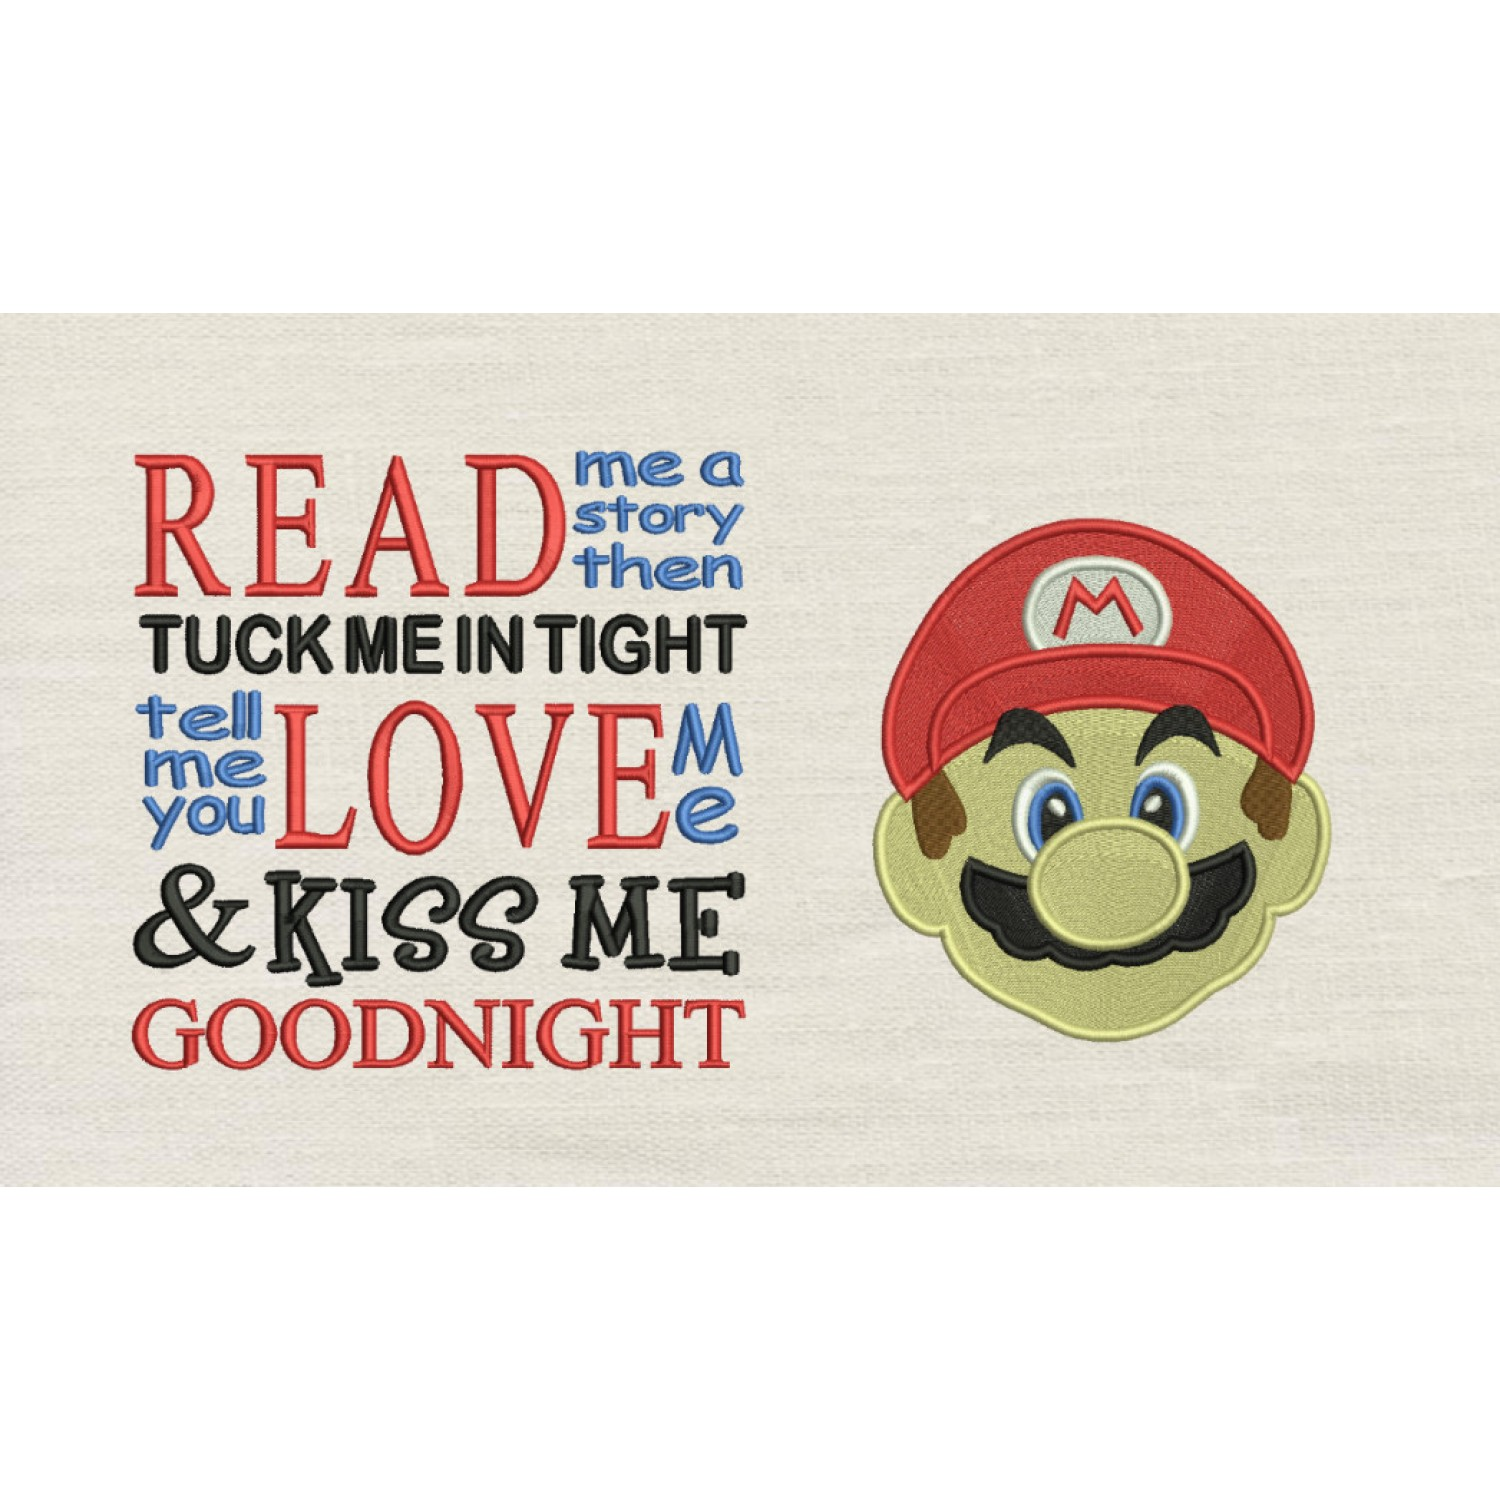 Mario Embroidery v2 with read me a story